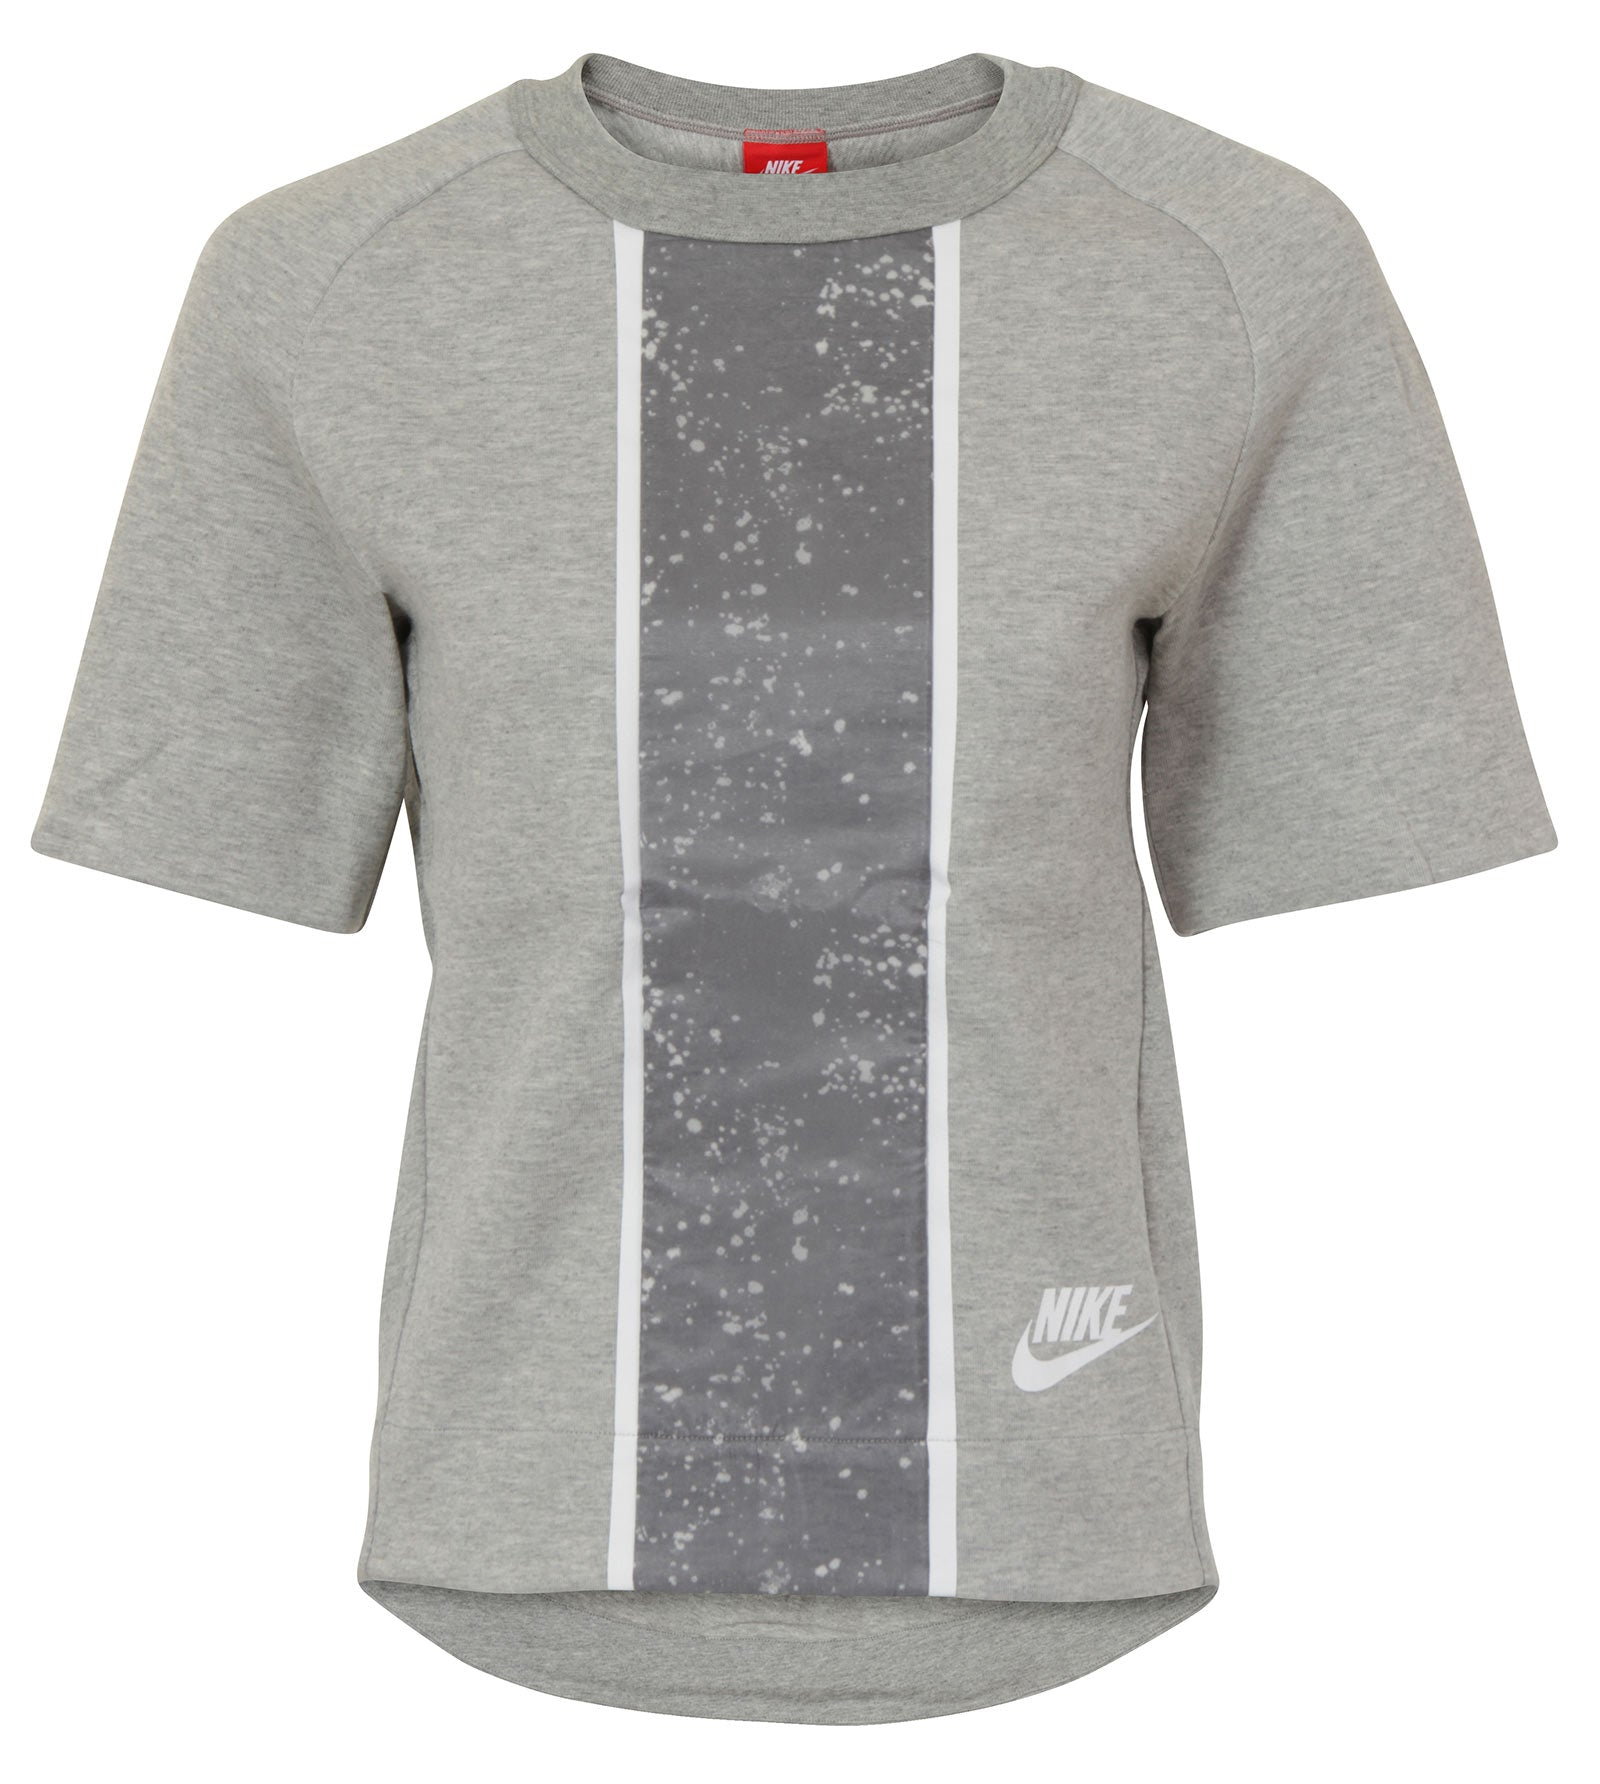 NIKE WOMENS TECH FLEECE S/S CREW